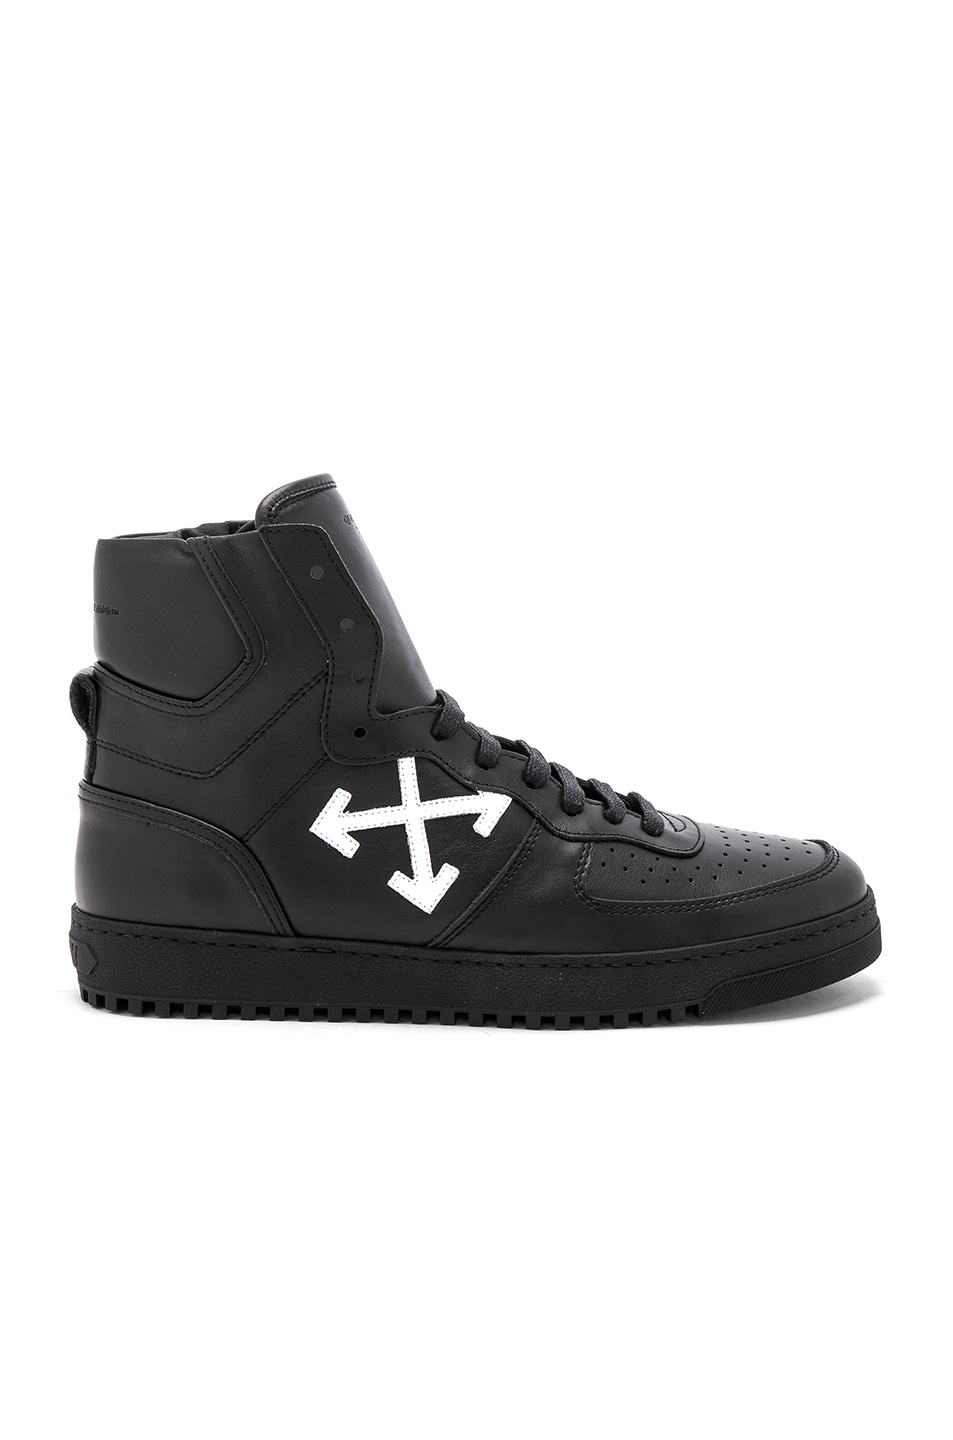 Image 2 of OFF-WHITE 70s High Top Sneakers in Black & White